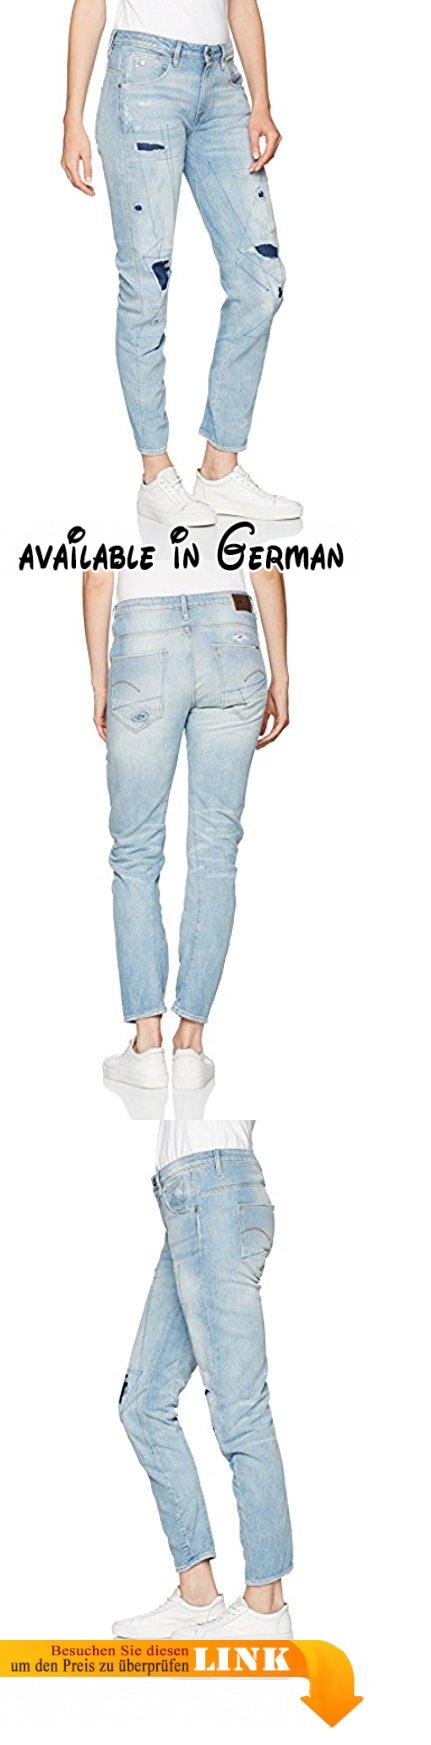 G-STAR RAW Damen Jeans Arc 3D Low Boyfriend Wmn, Blau (Lt Aged